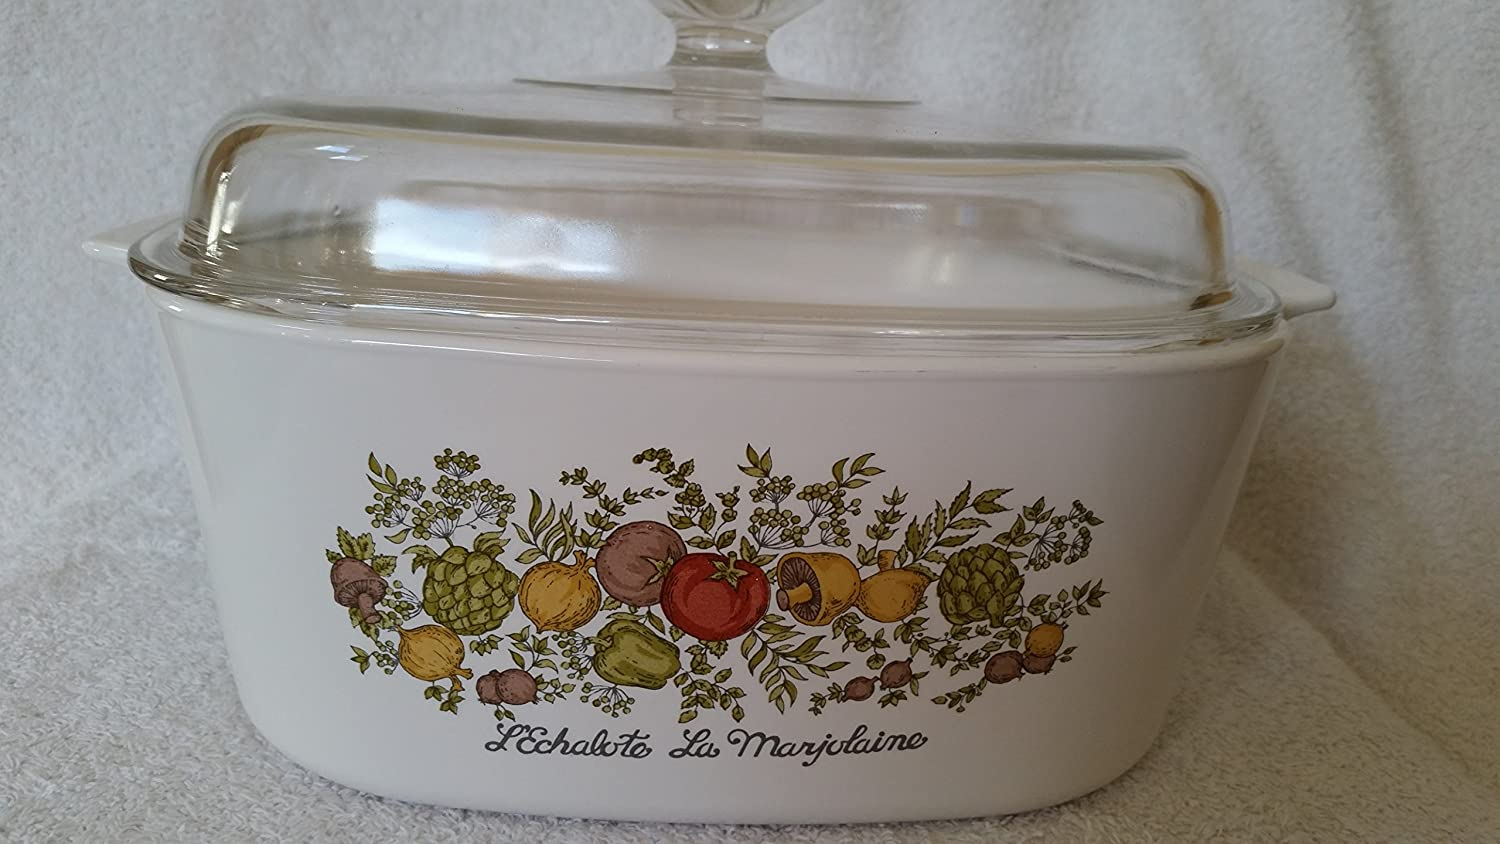 Vintage Corning Ware Spice of Life Lexhalote La Marjolaine Dutch Oven with Lid 5 L Liter